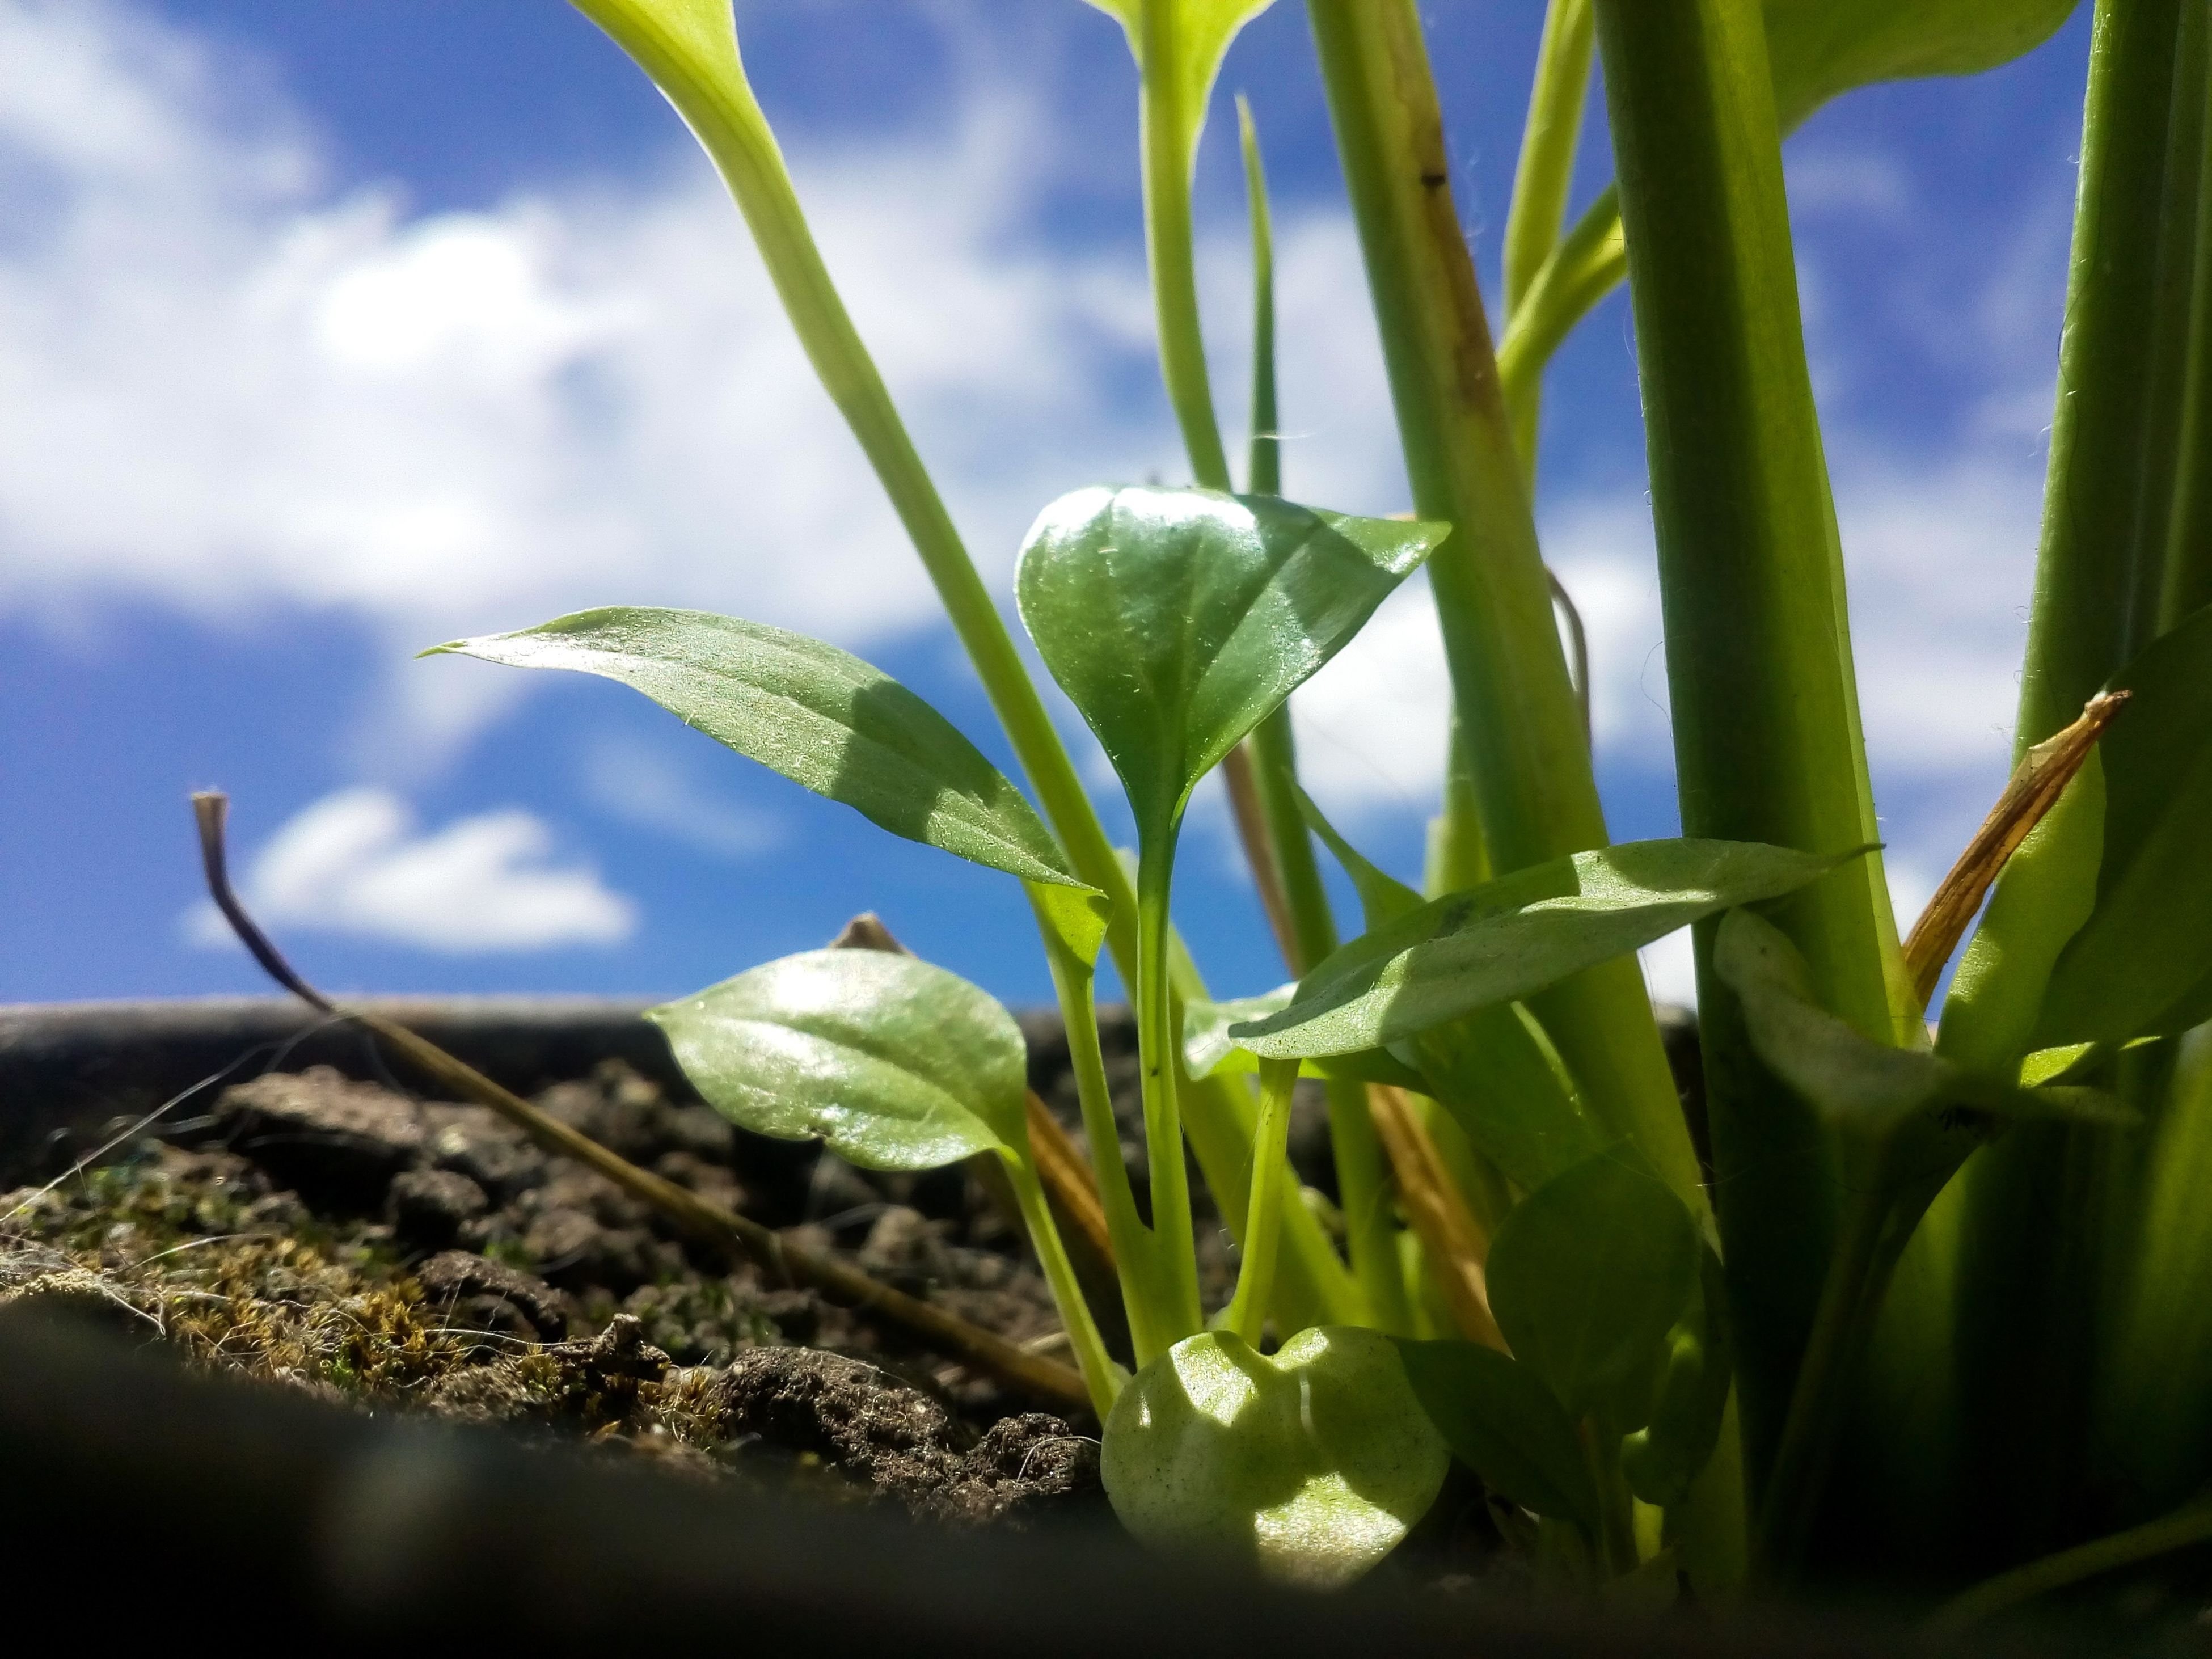 growth, nature, leaf, close-up, plant, freshness, drop, green color, no people, beauty in nature, day, water, wet, sky, outdoors, beginnings, new life, fragility